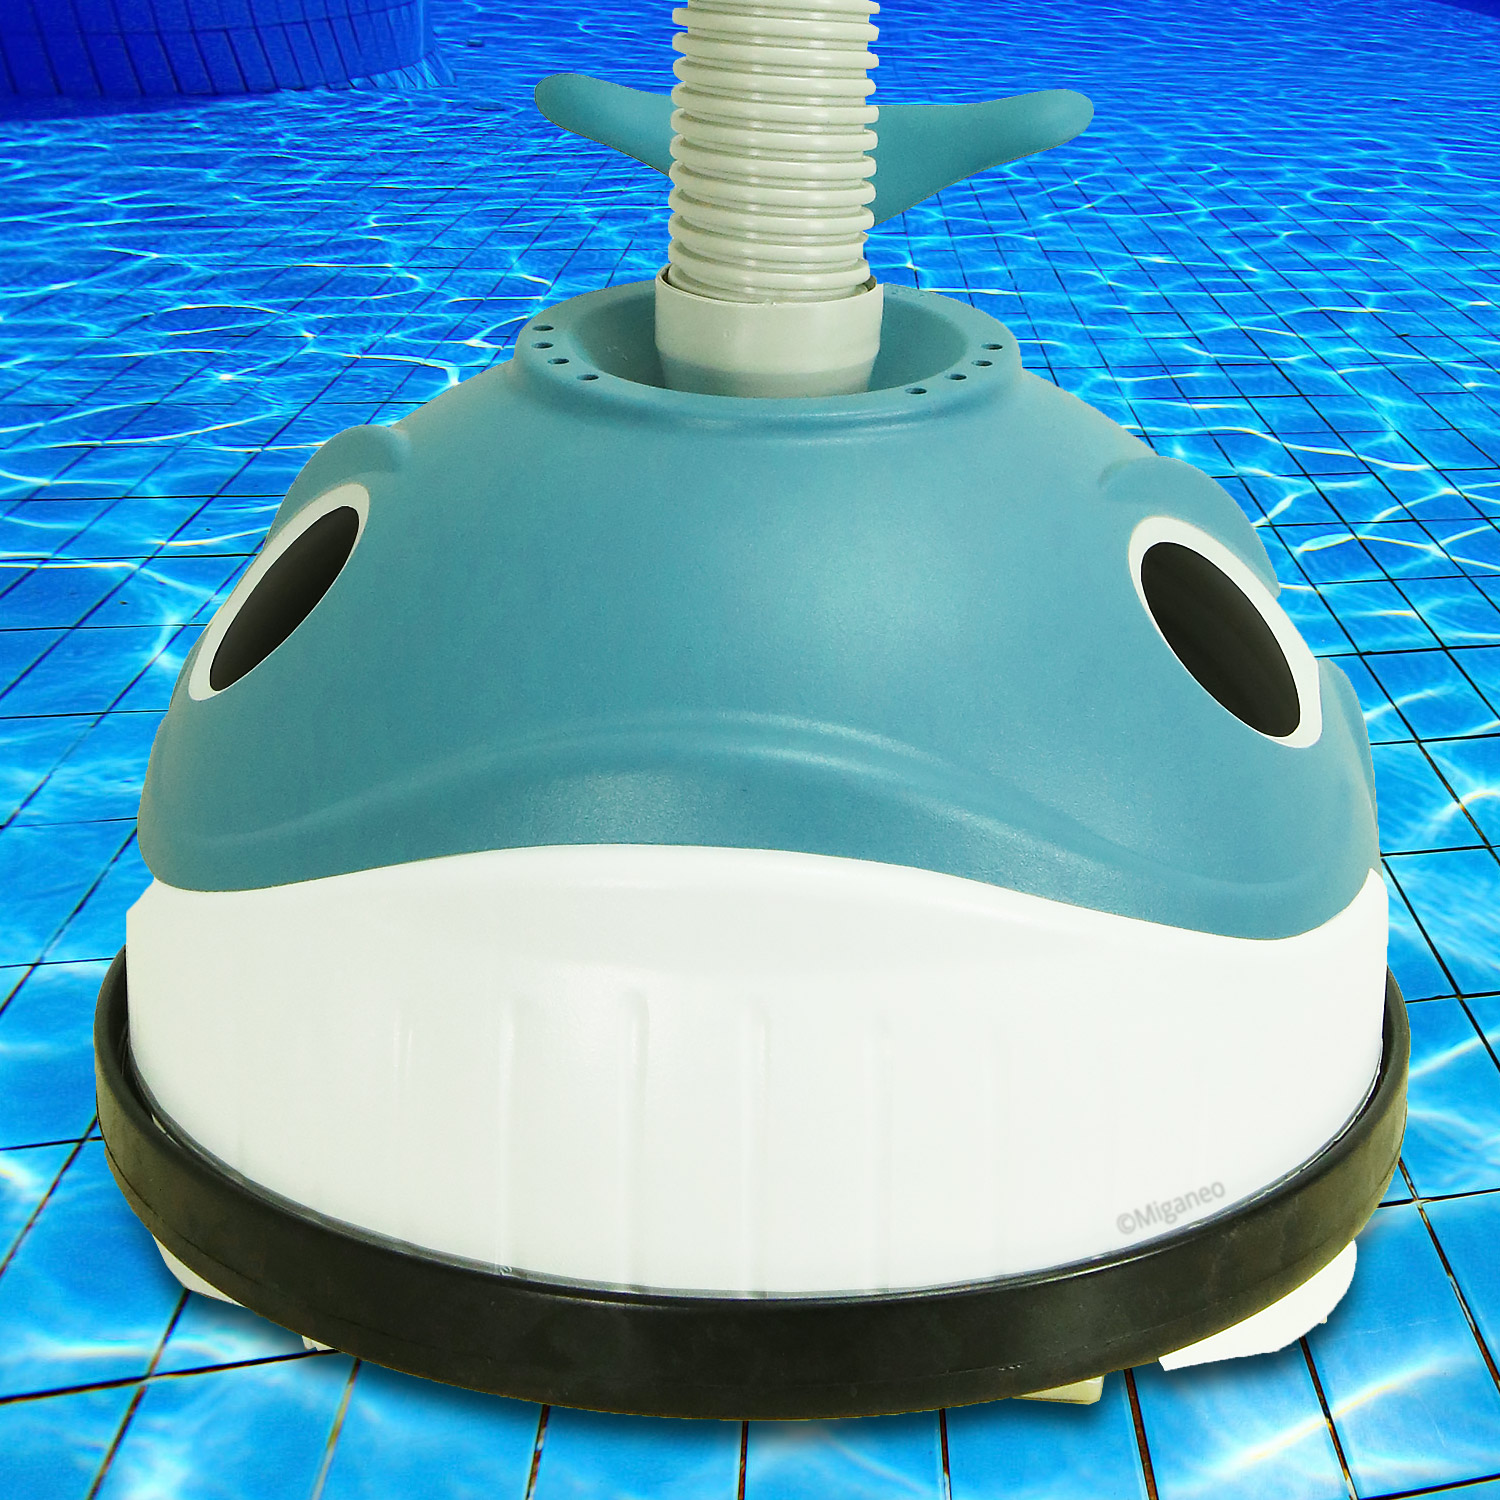 Bodensauger Pool Roboter Bodensauger Buggy Whaly Scuba Pool Poolroboter Poolrunner